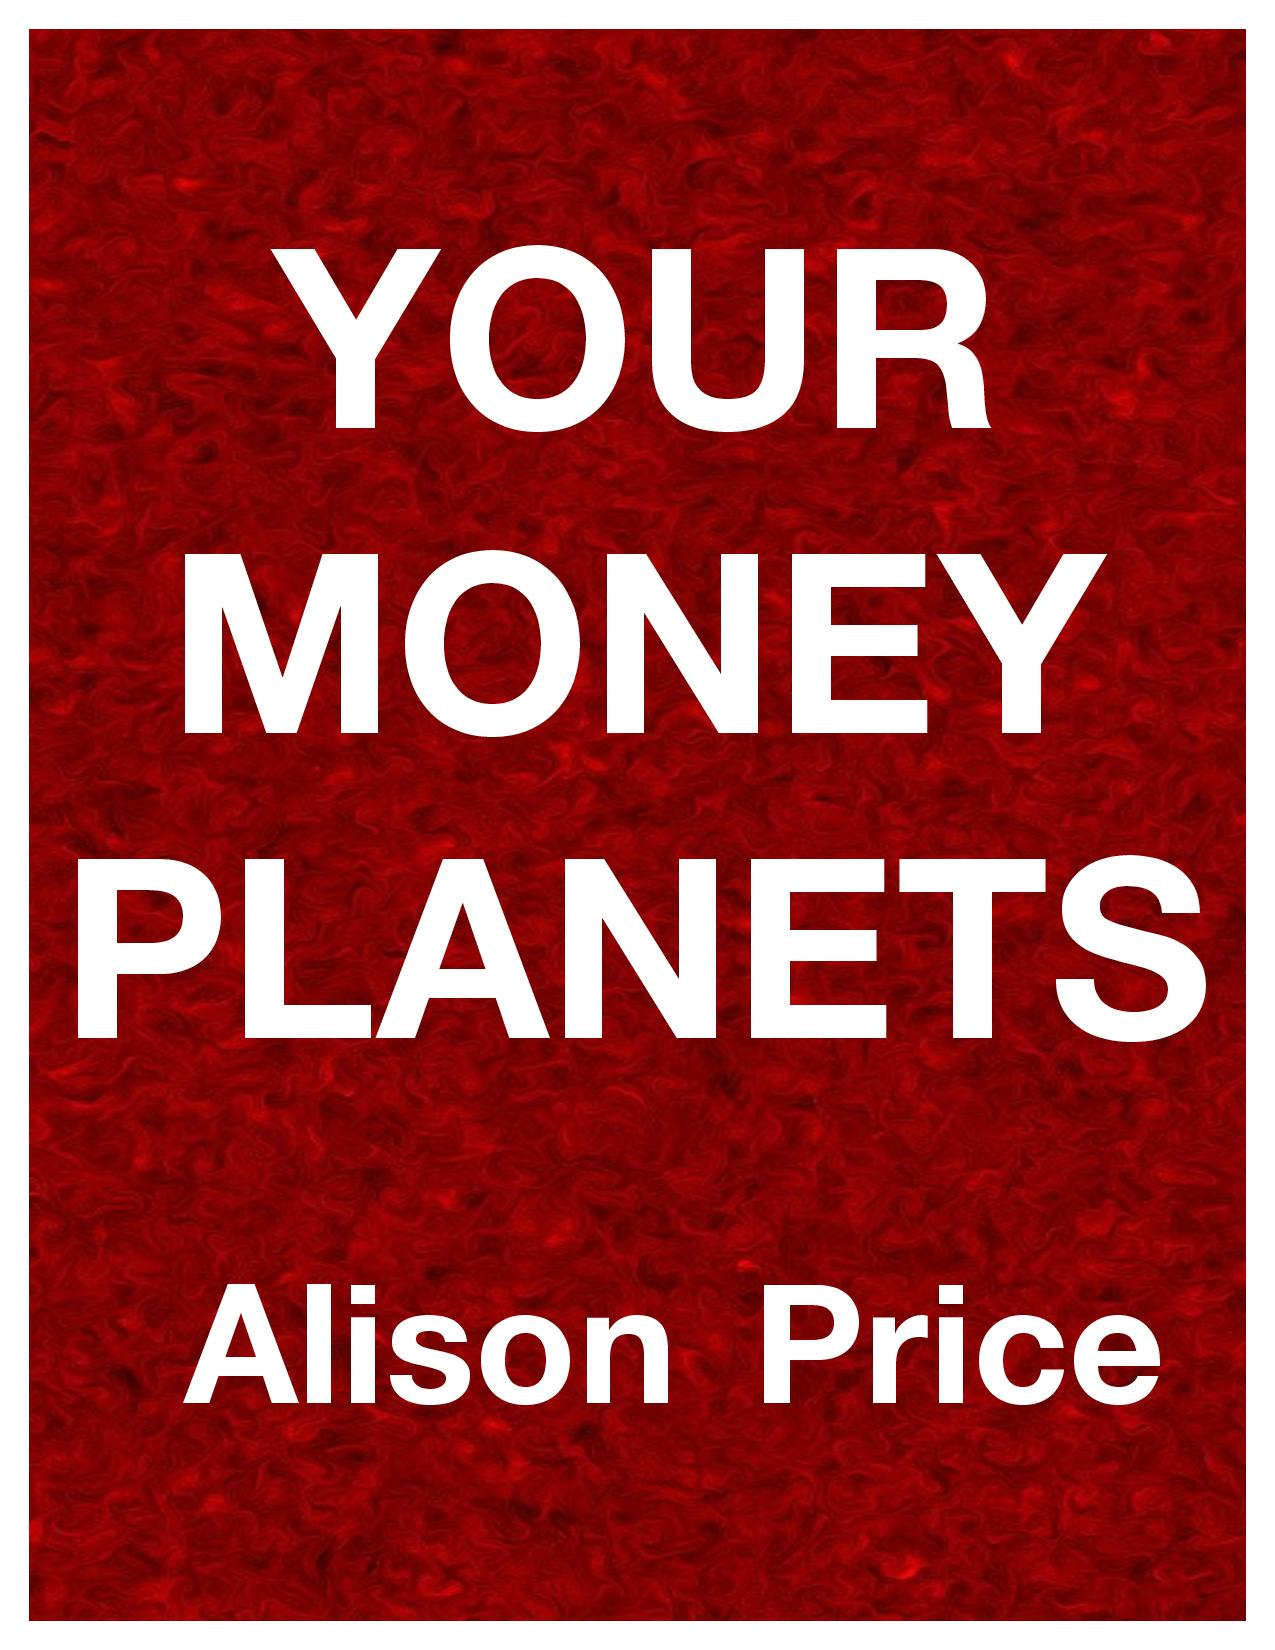 Your Money Planets Kindle Cover Page 001